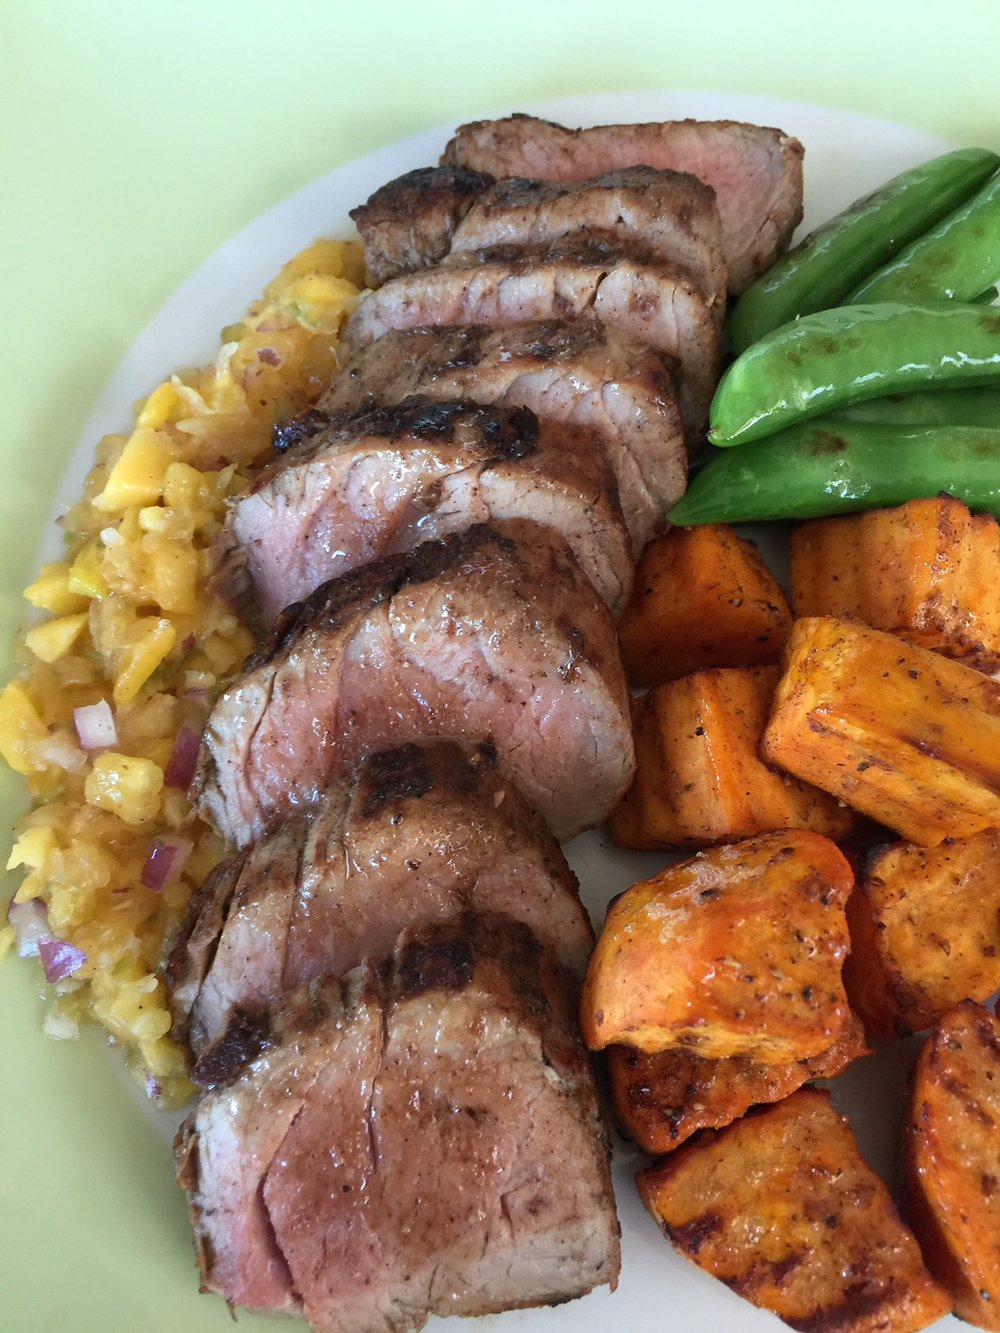 Jamaican jerk pork tenderloin with pineapple mango salsa, Caribbean Spiced Sweet Potatoes and Sugar Snap Peas